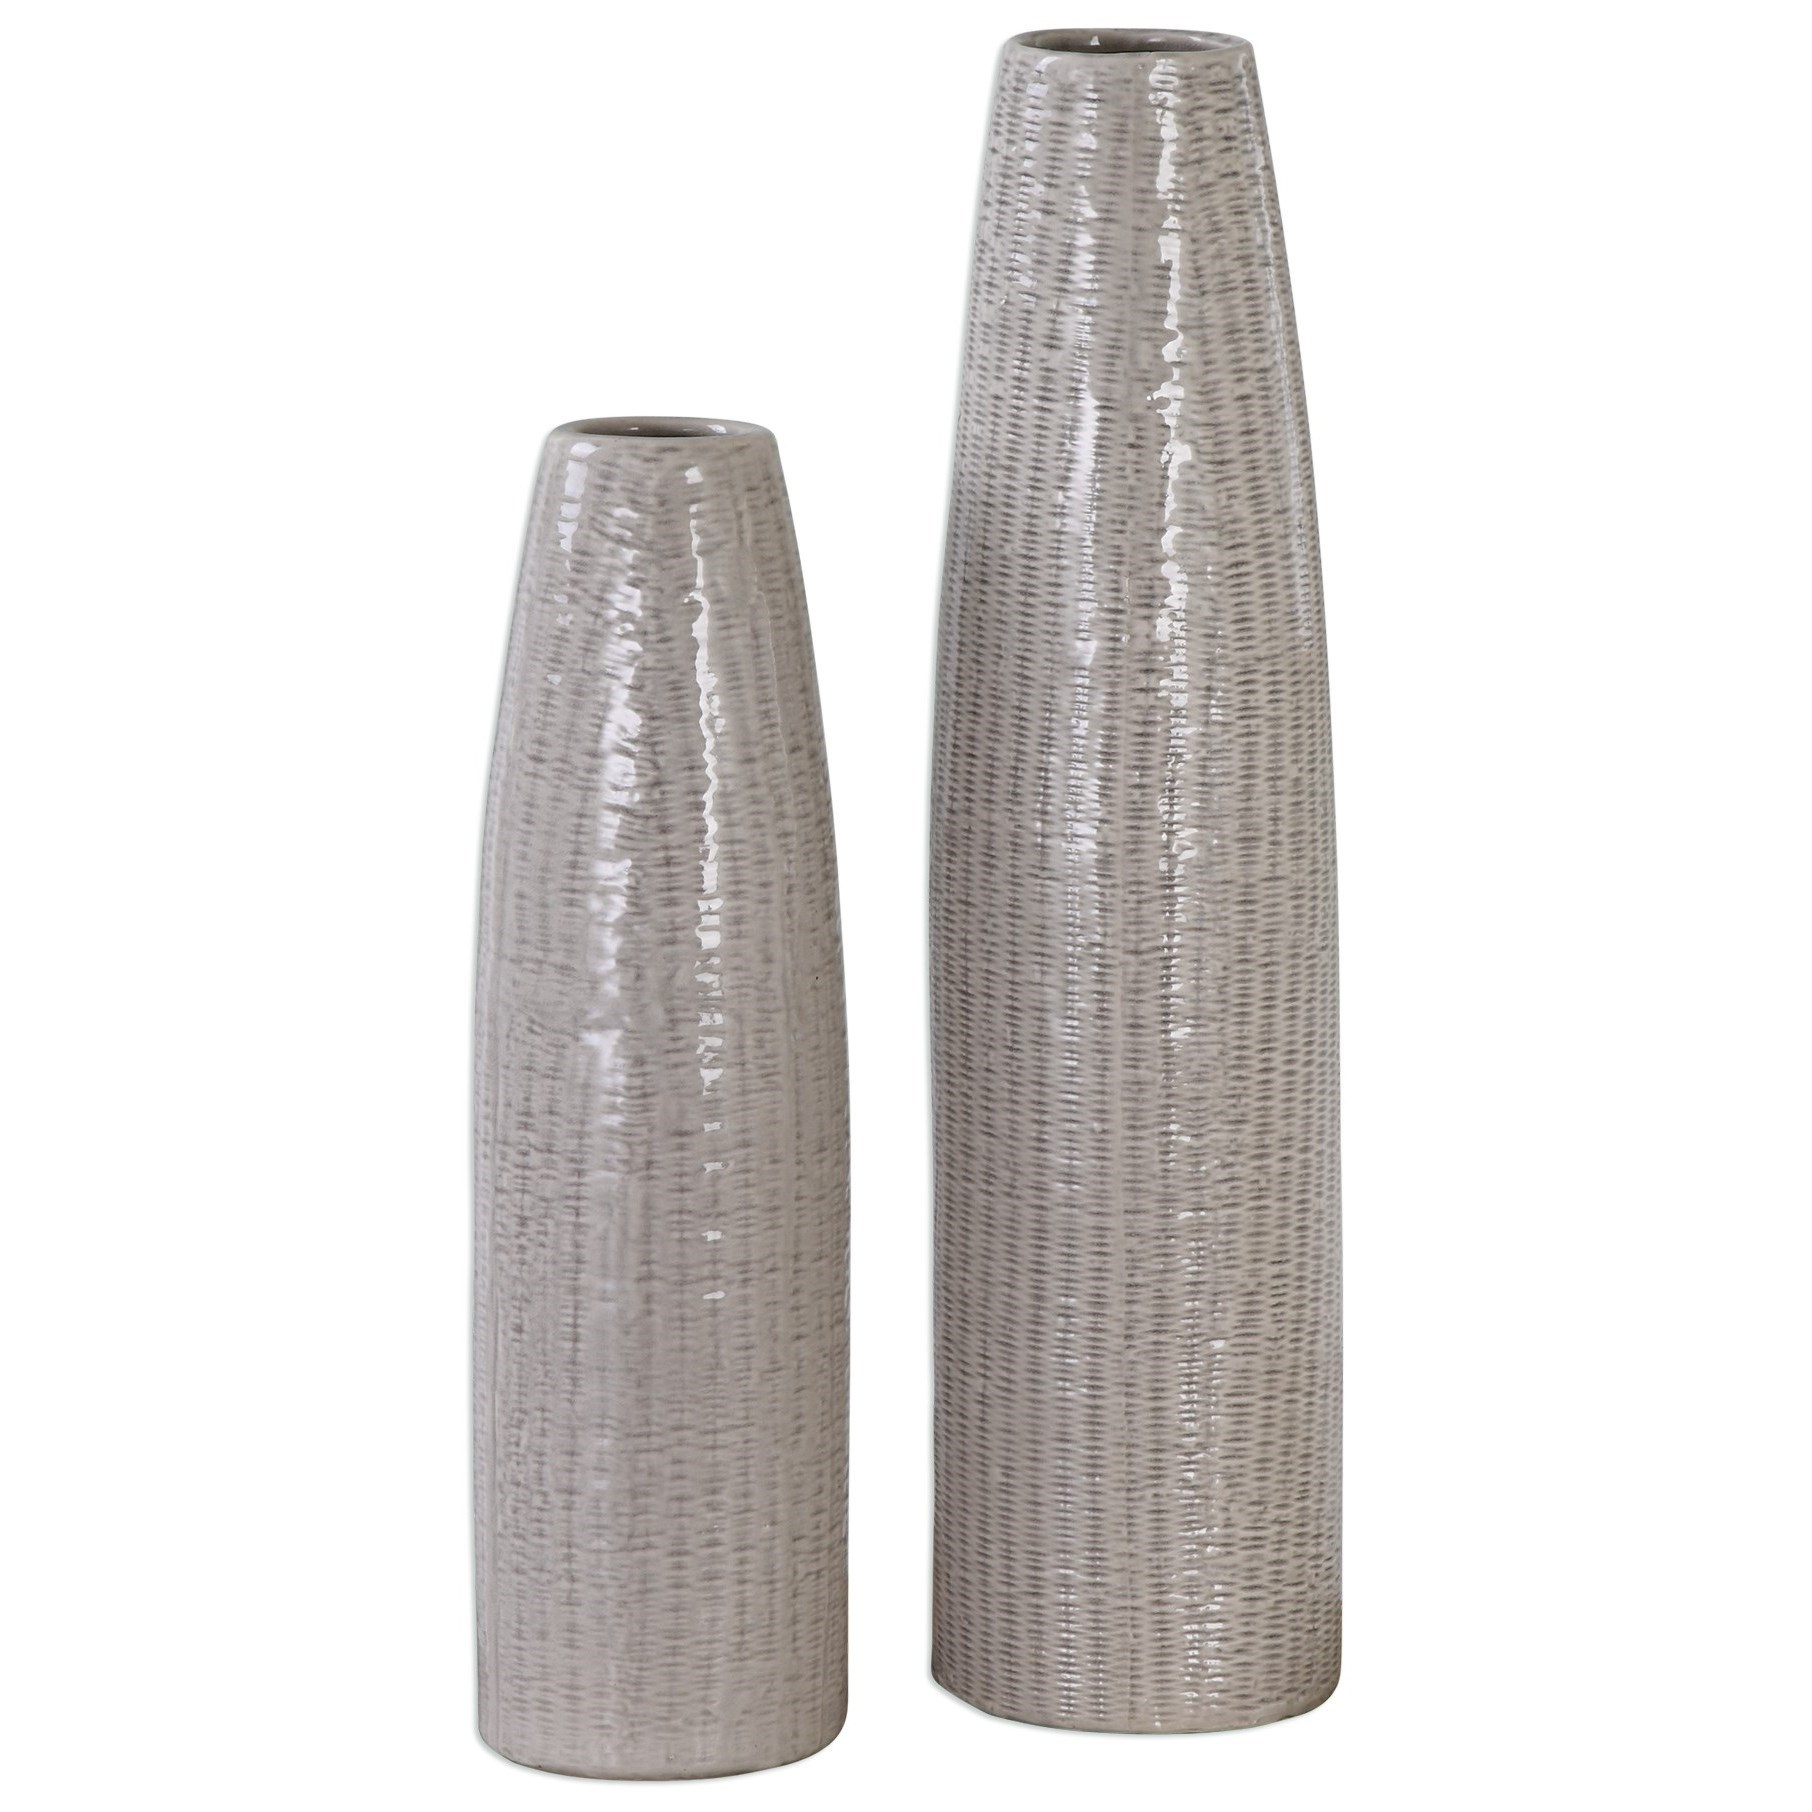 Uttermost Accessories Sara Vases (Set of 2) - Item Number: 20156